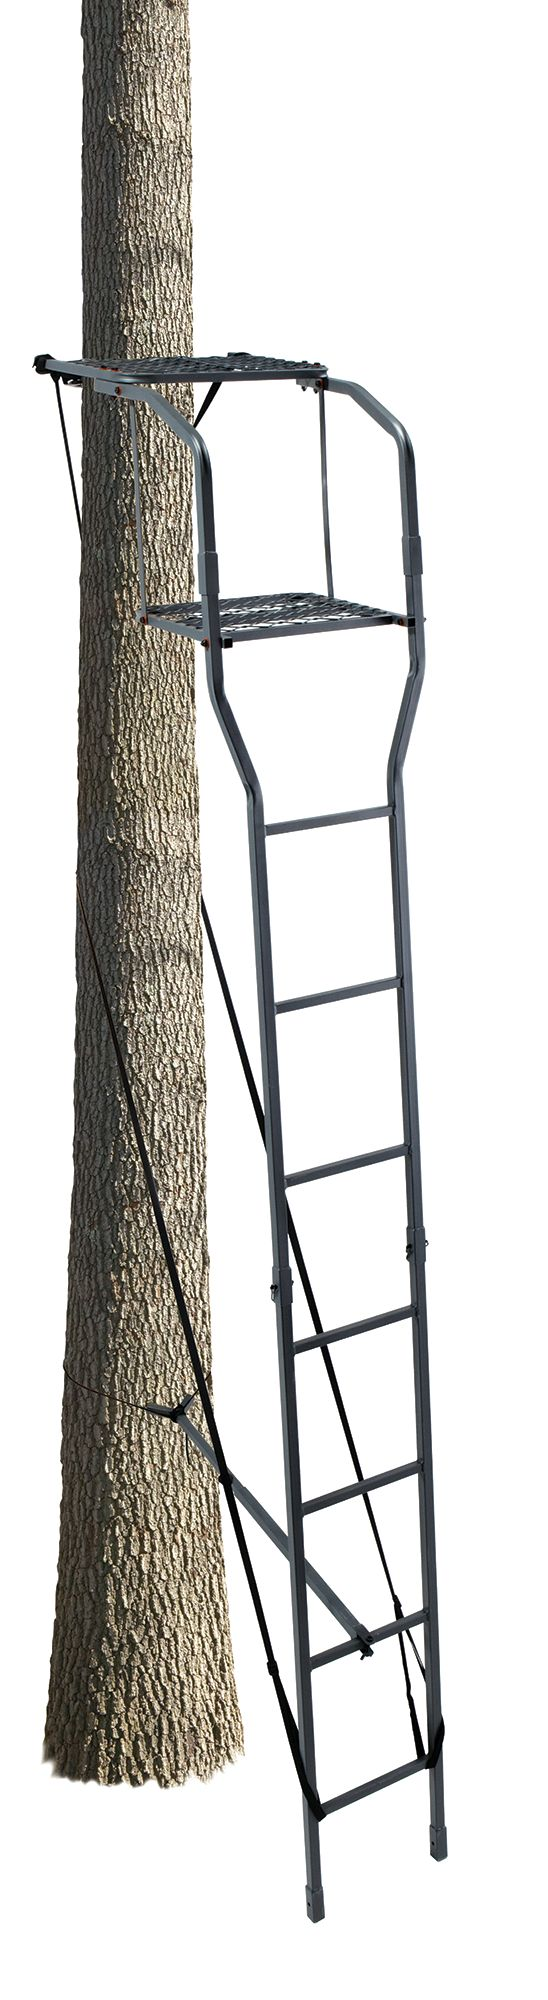 Field & Stream Lookout 15' Ladder Stand thumbnail